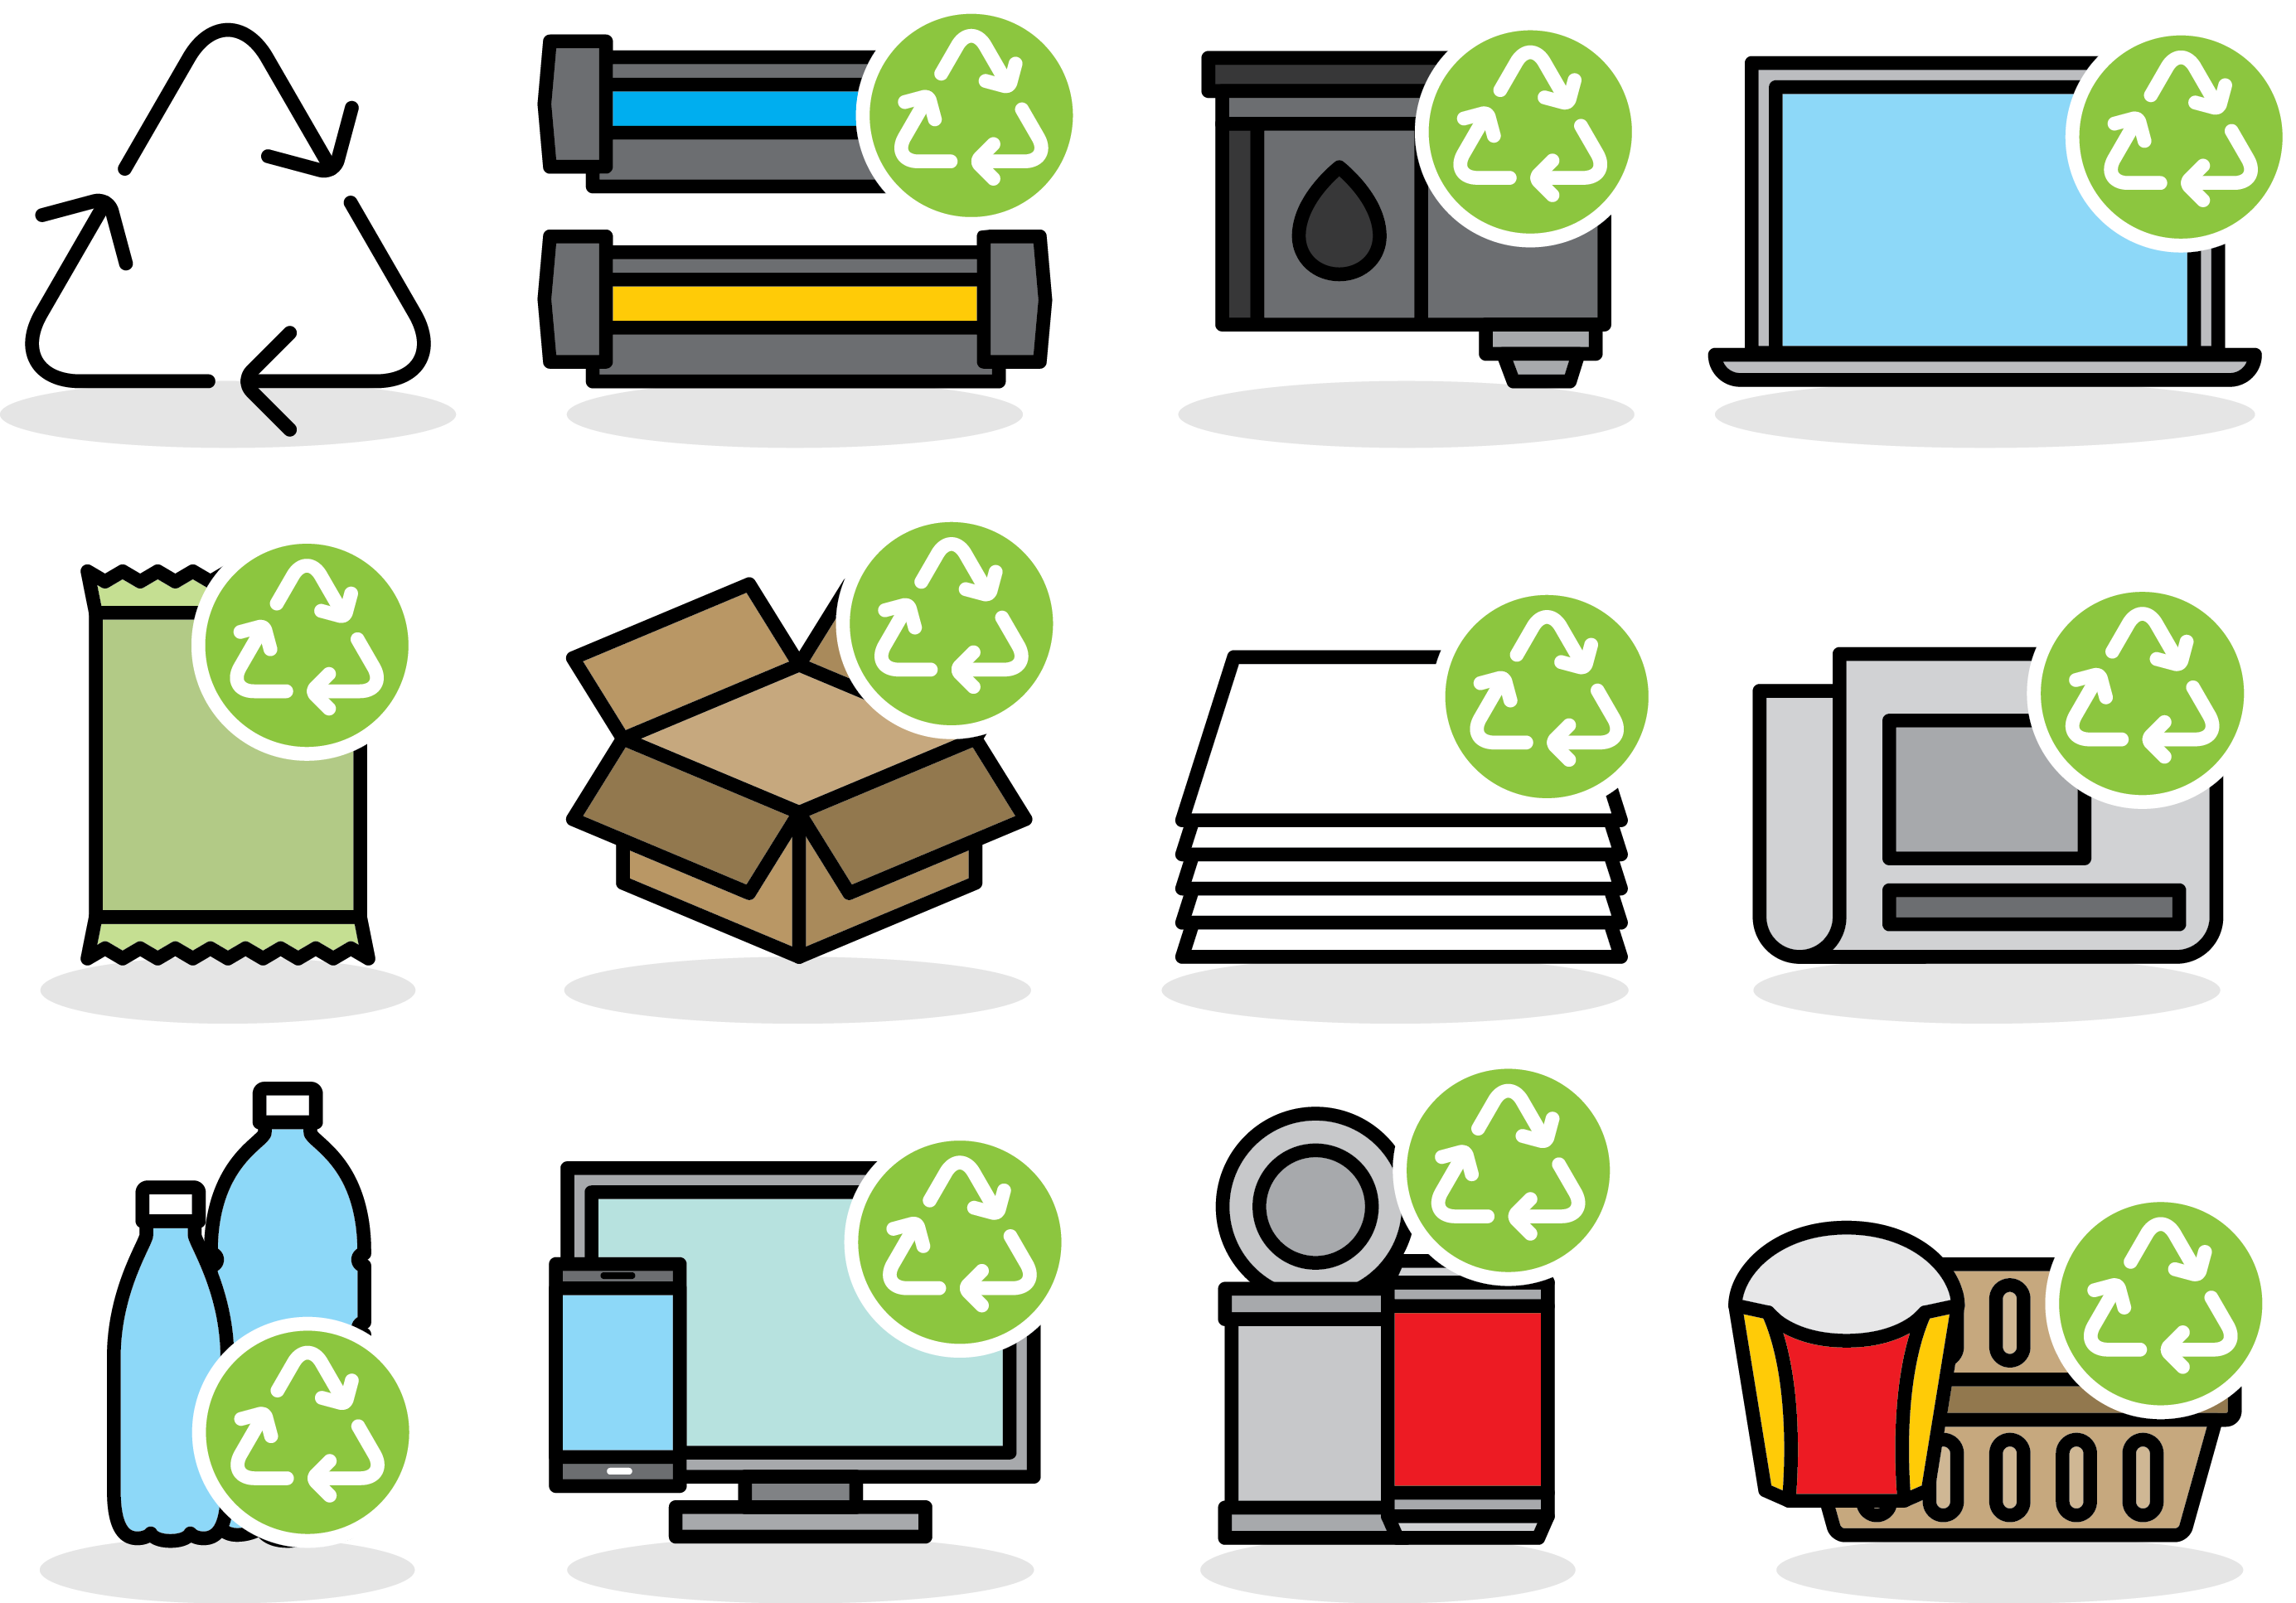 Paper Waste Symbol Recycling Vector PNG Download Free PNG Image